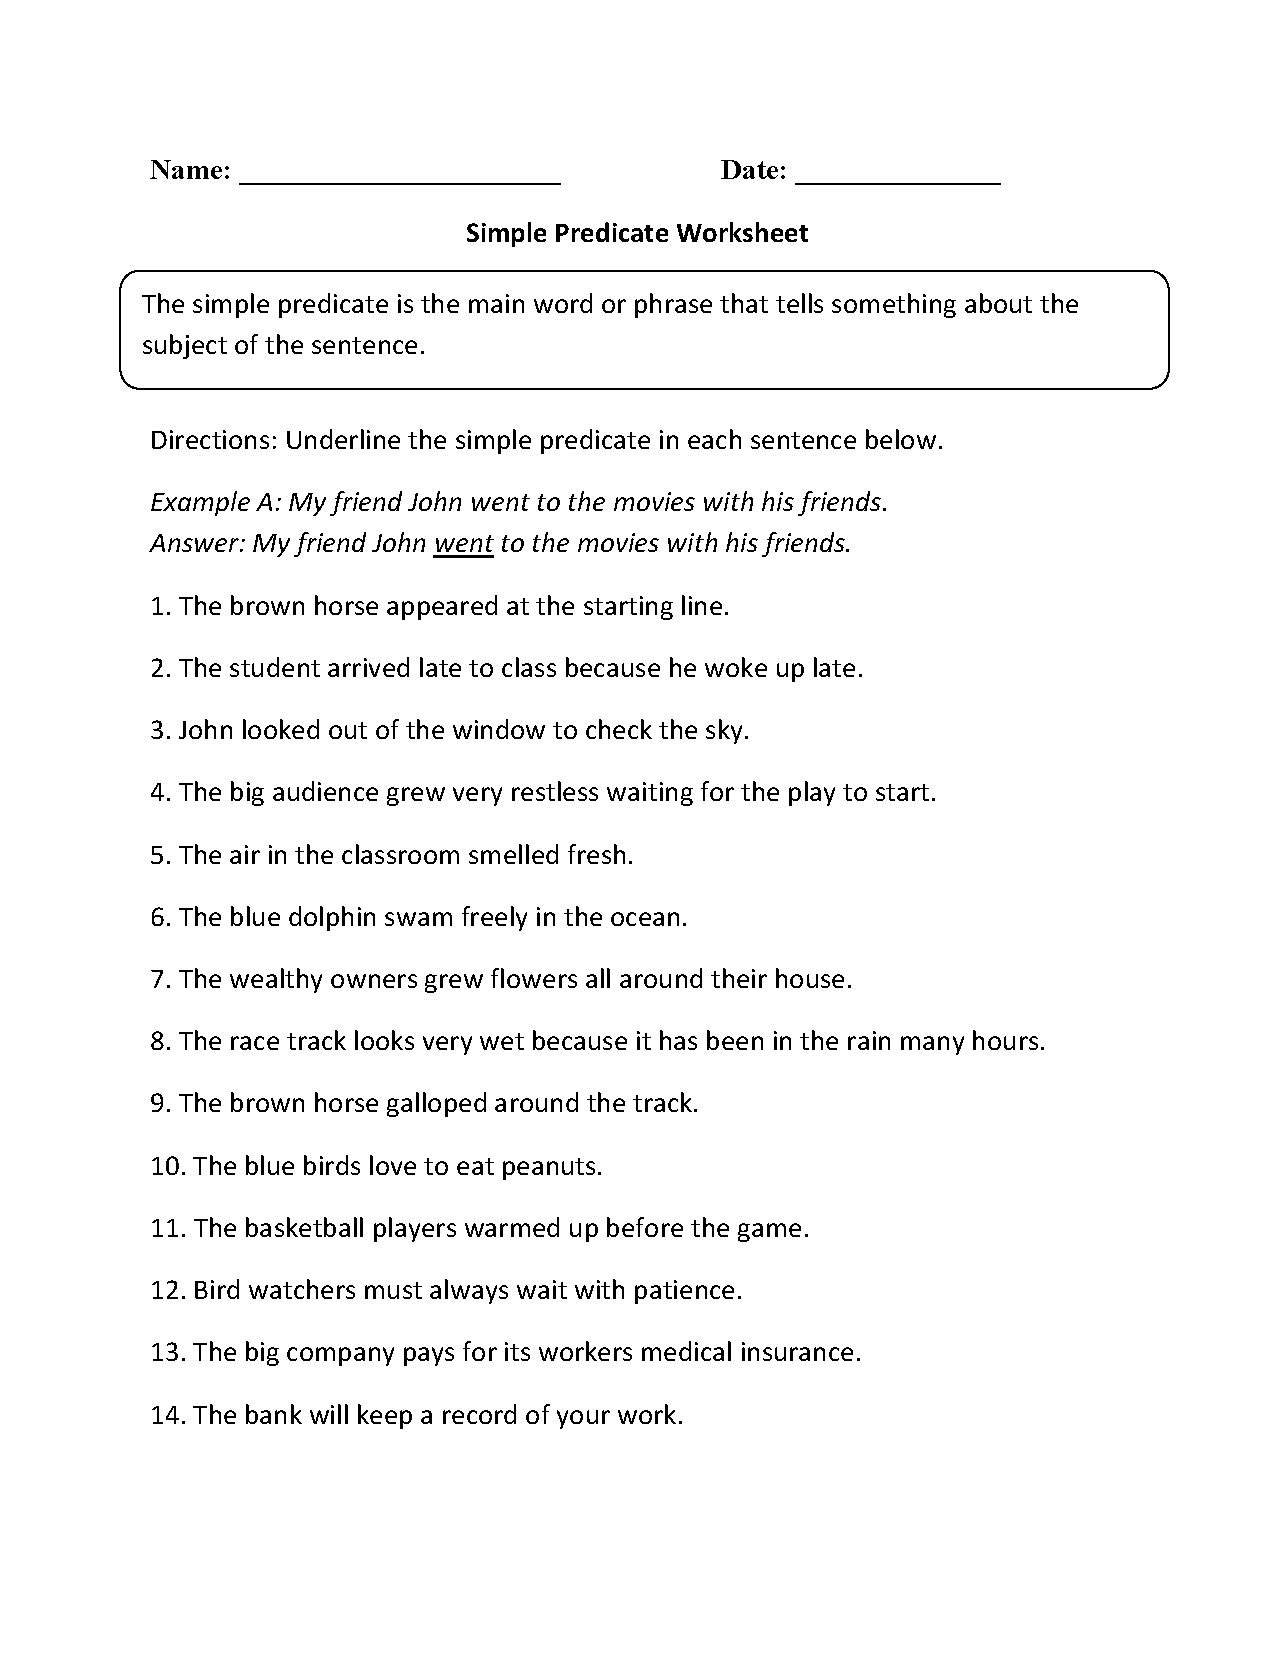 Subject and Predicate Worksheets | Compound Predicate Worksheet Part 1